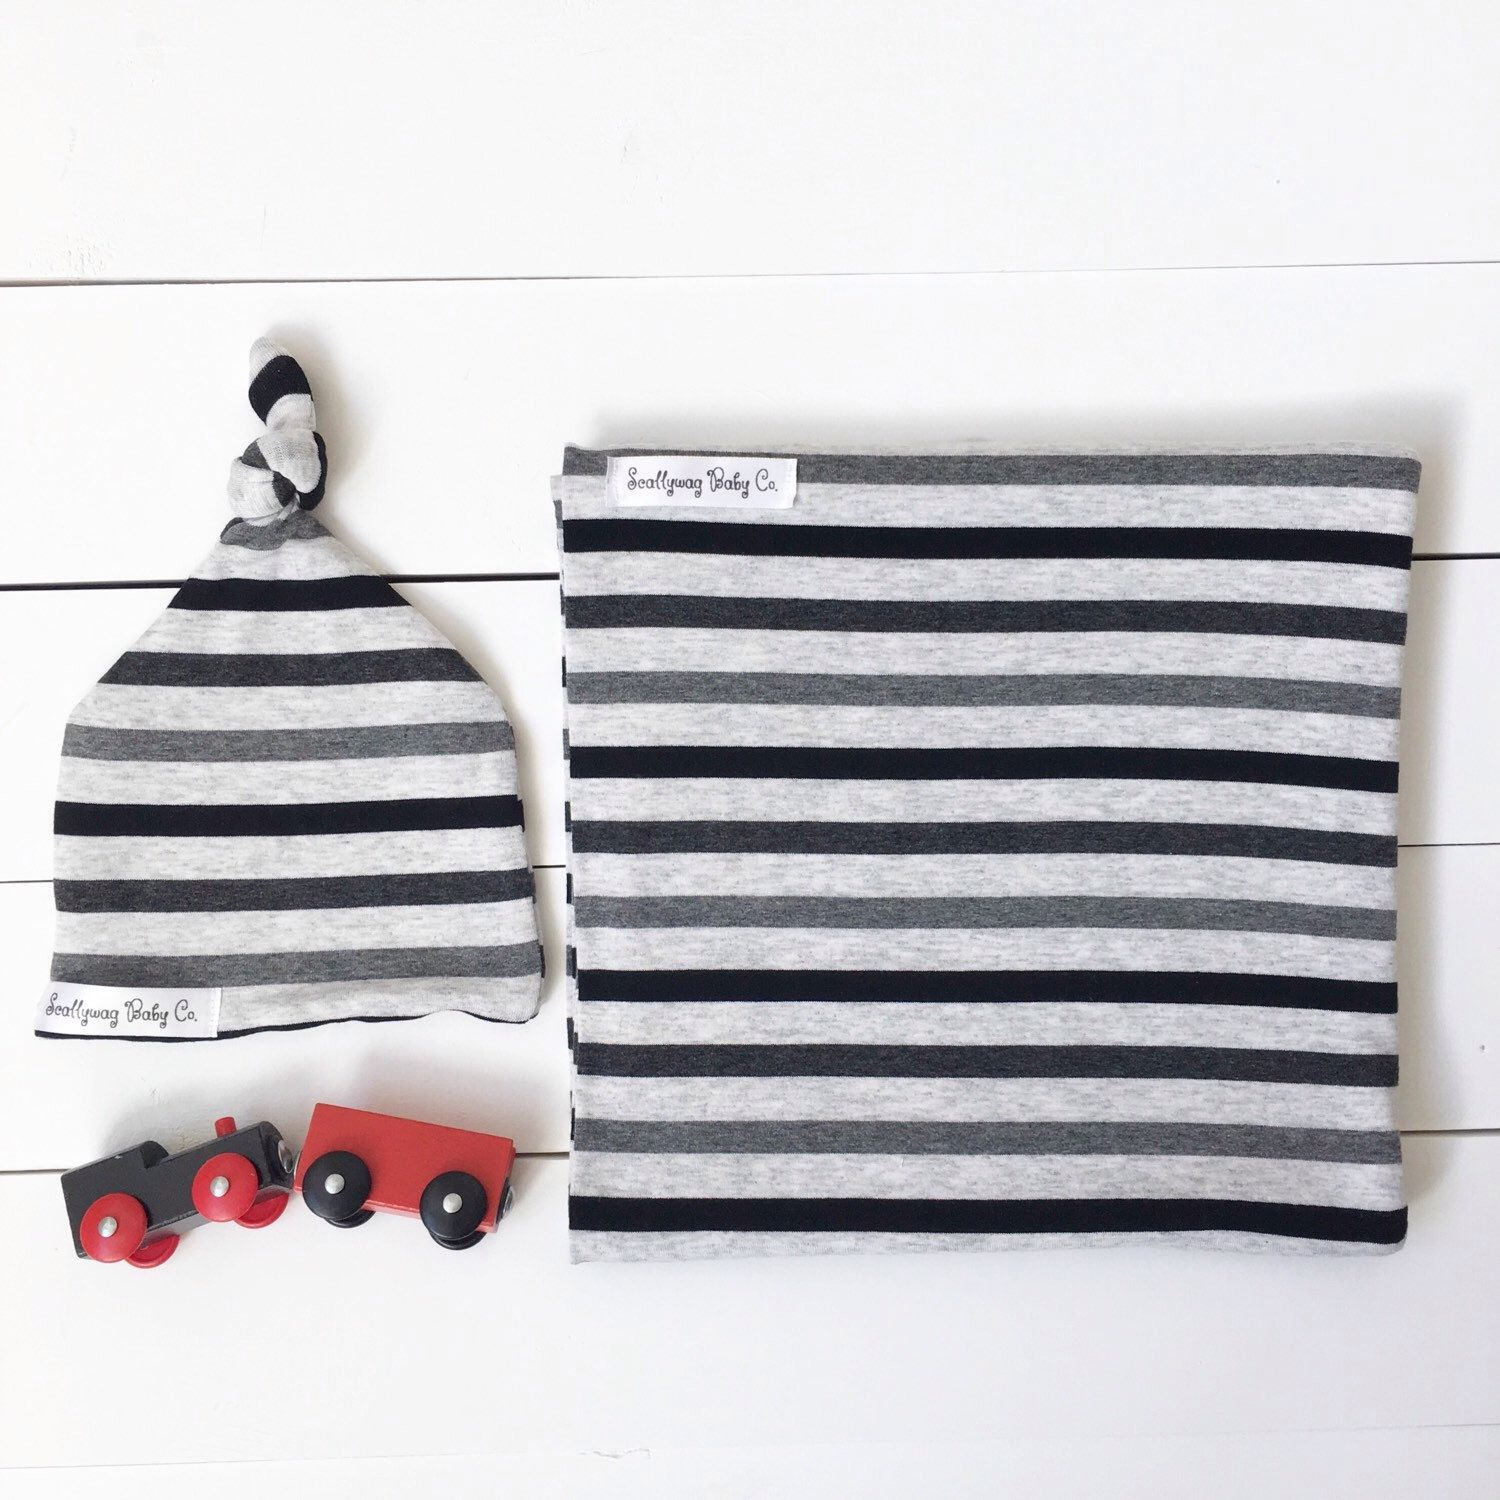 Swaddle Blanket - Grey Stripe Swaddle Wrap - Newborn Swaddle Blanket - Receiving Blanket - Swaddle Wrap - Layette  - Stripe Swaddle Blanket by ScallywagBabyCo on Etsy